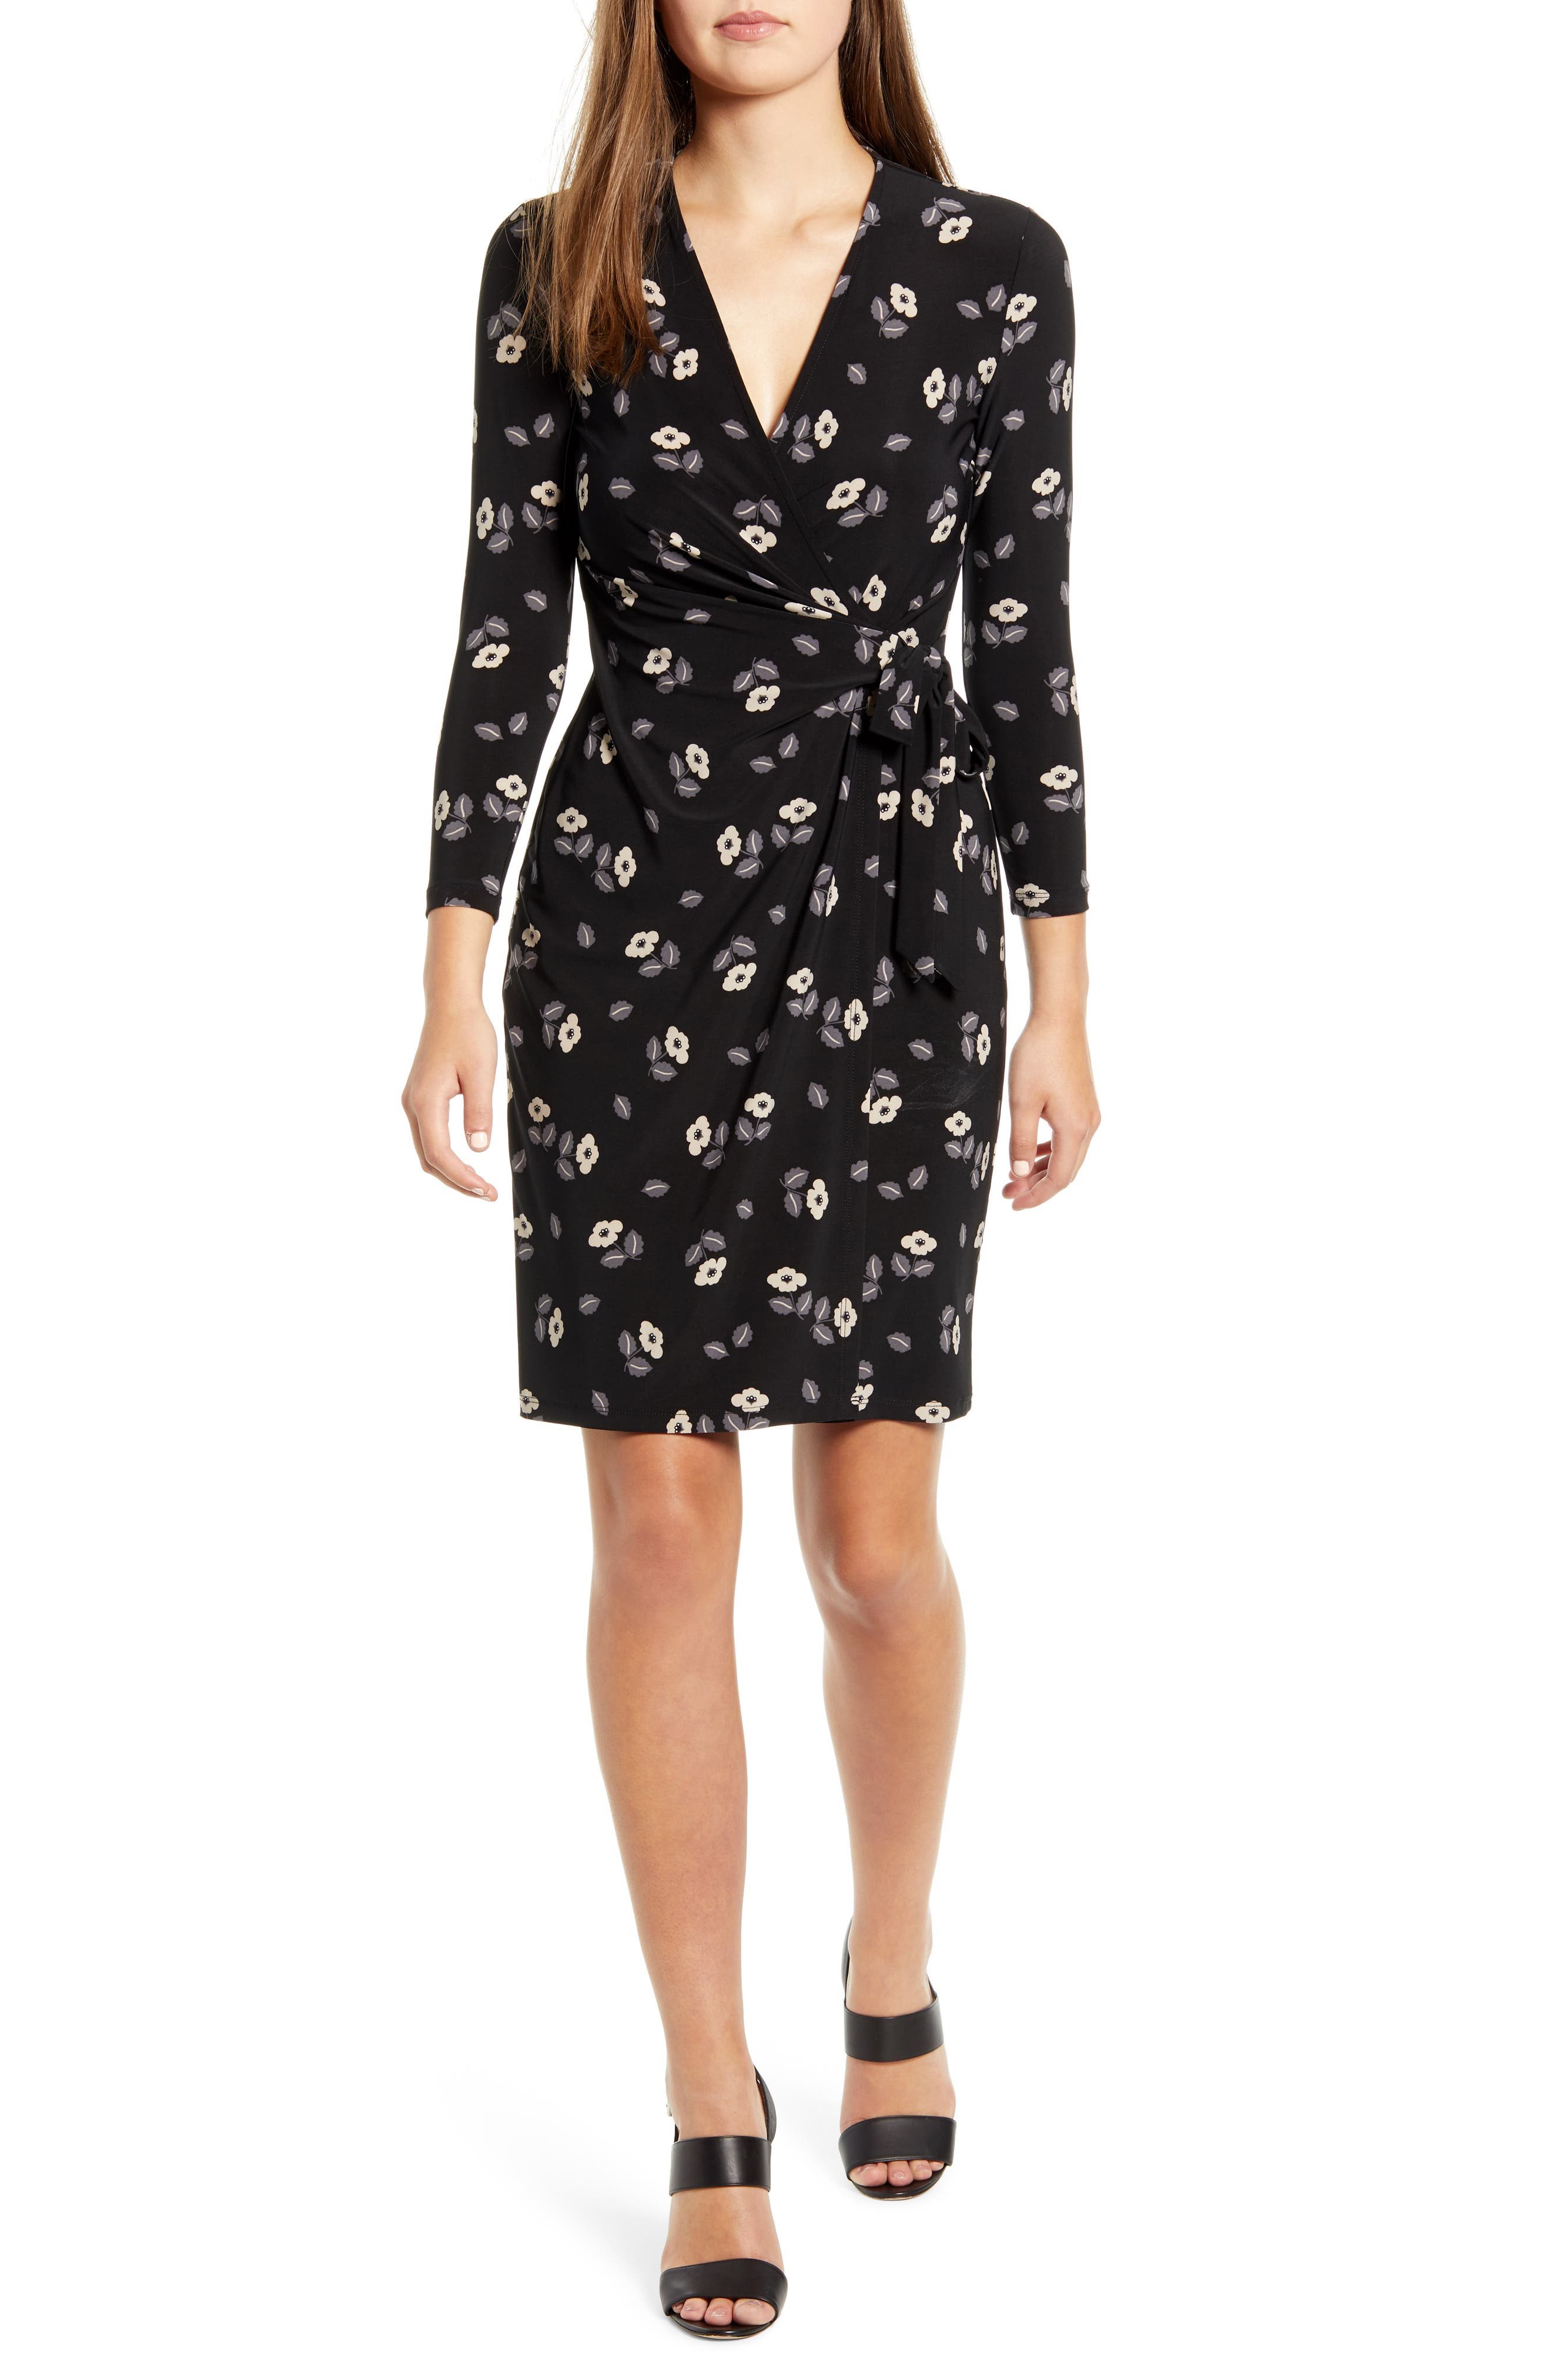 Anne Klein Rose Print Dress, Black